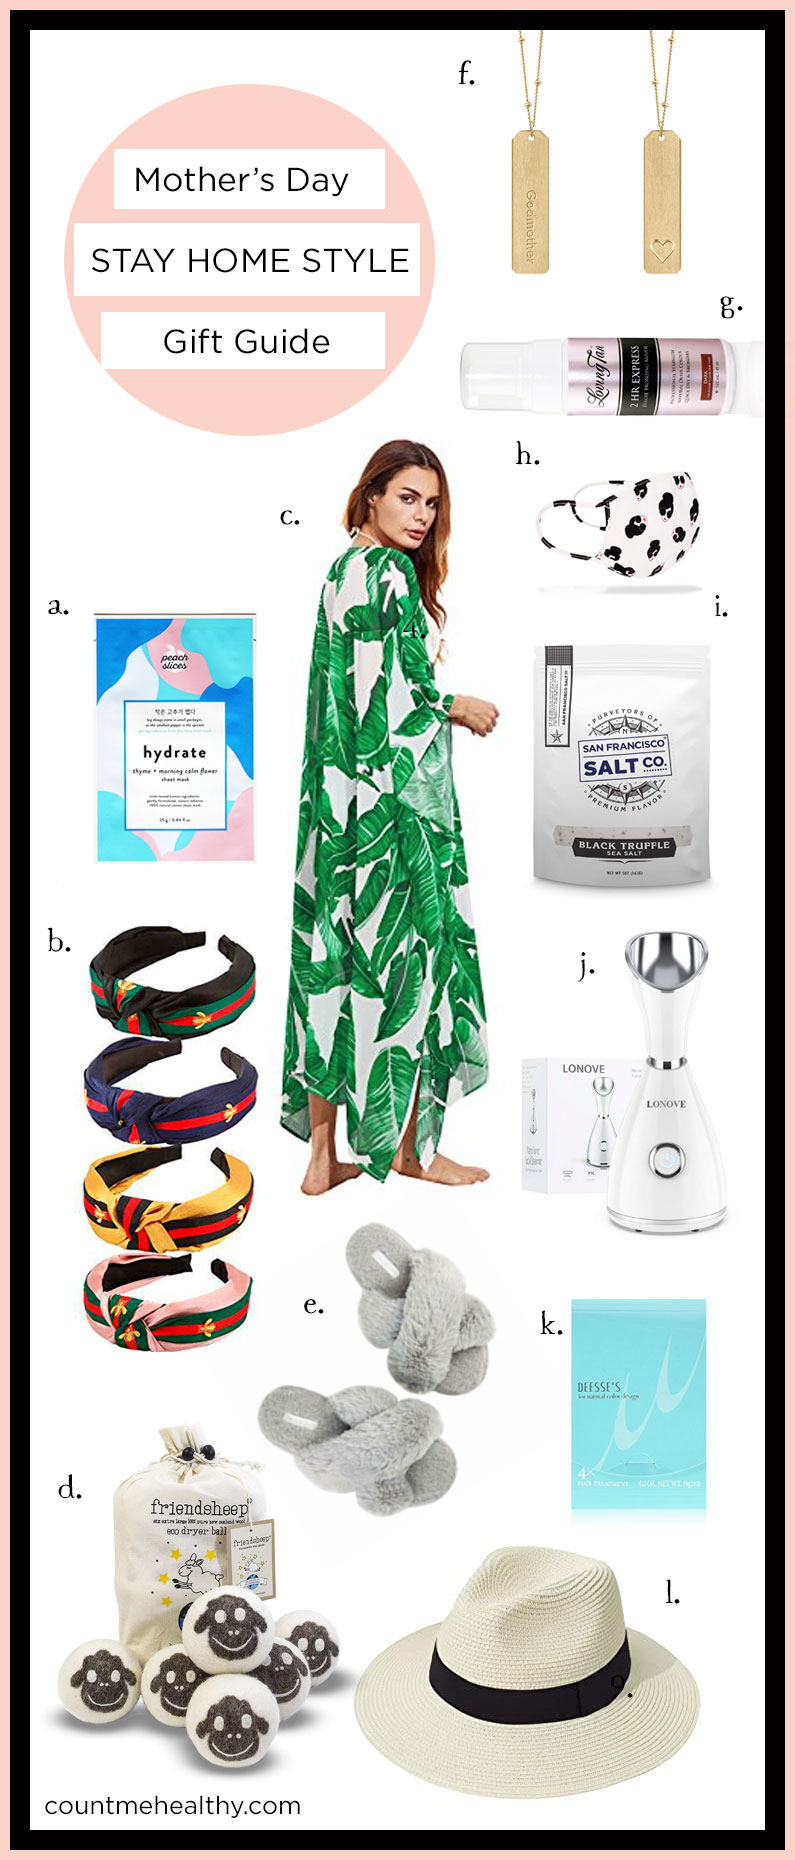 Mother's Day Gift Guide- Stay Home Style